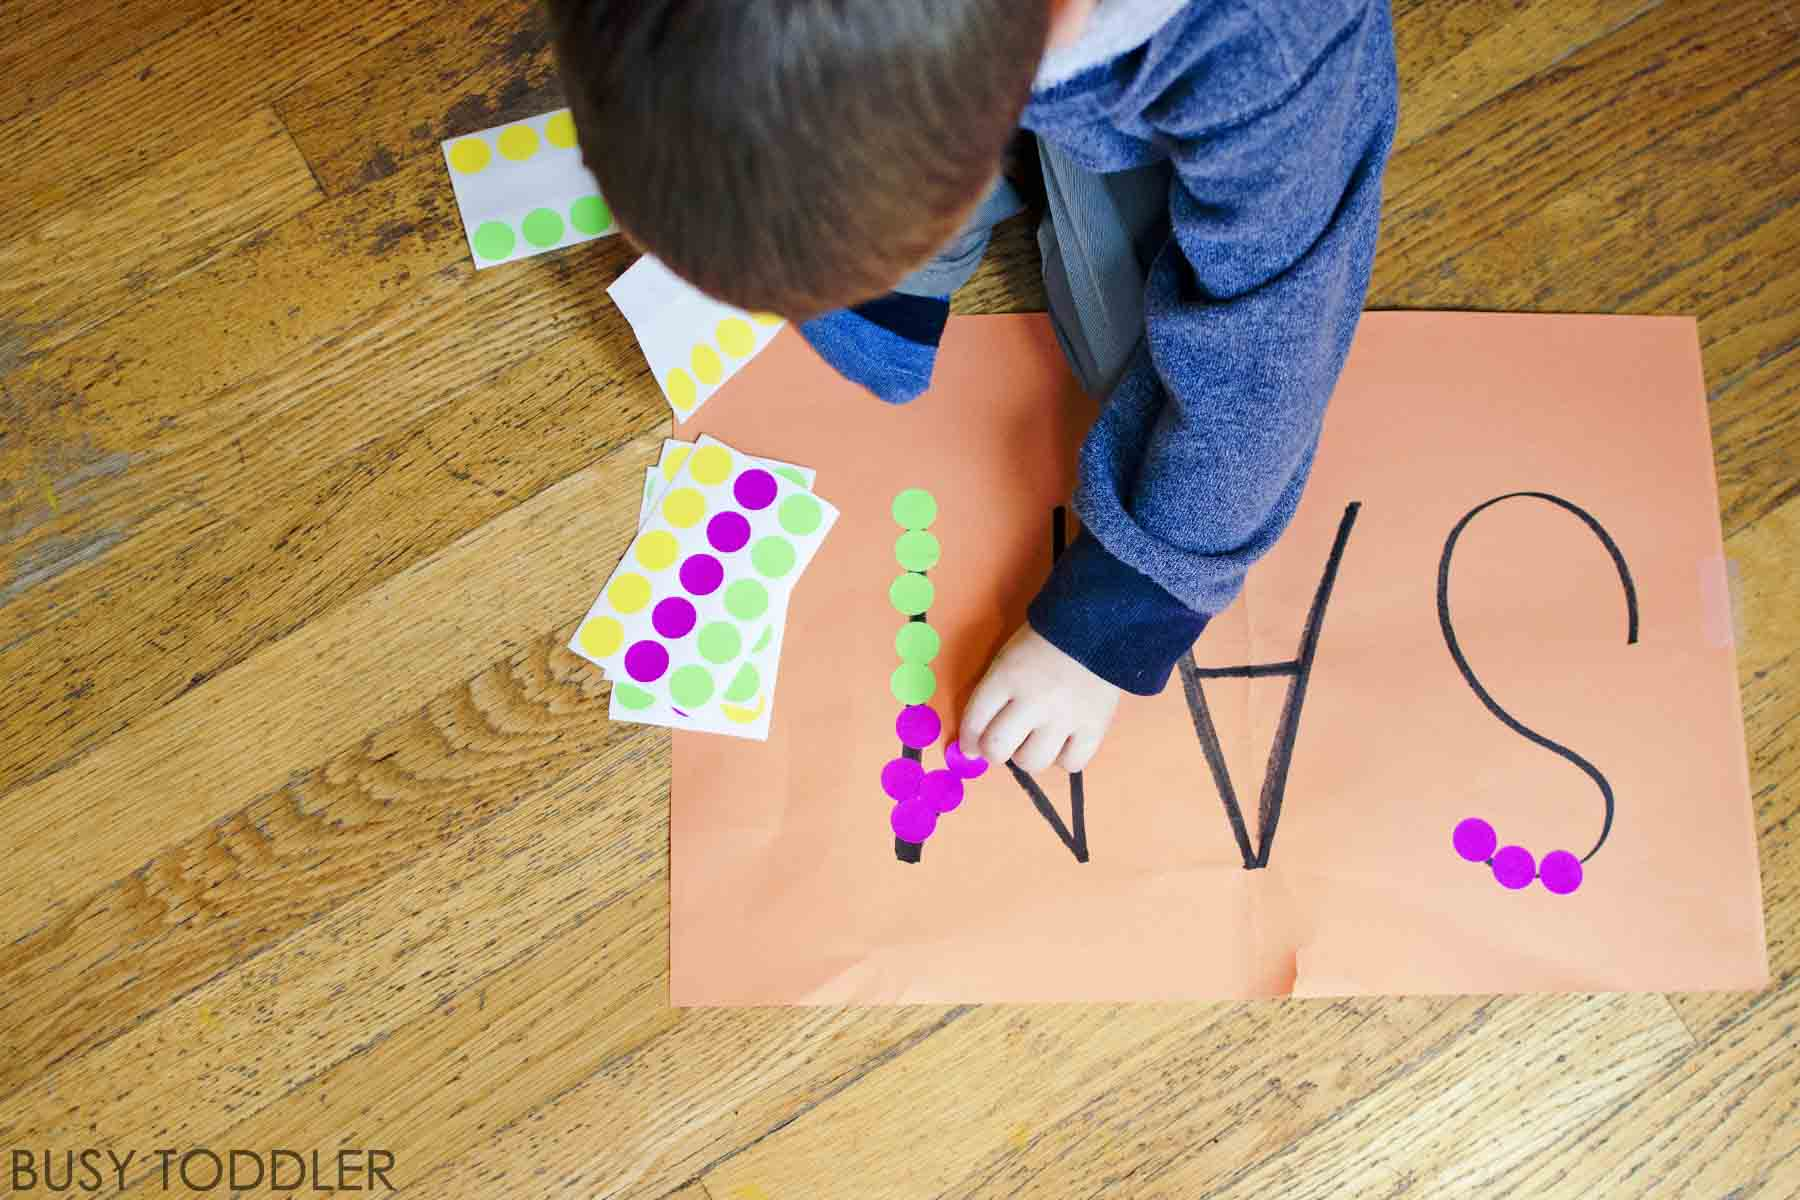 STICKER NAMES: A fine motor skills activity using stickers! An easy indoor toddler activity. Fun playing with letter names and name identification skills. A quick and easy activity.